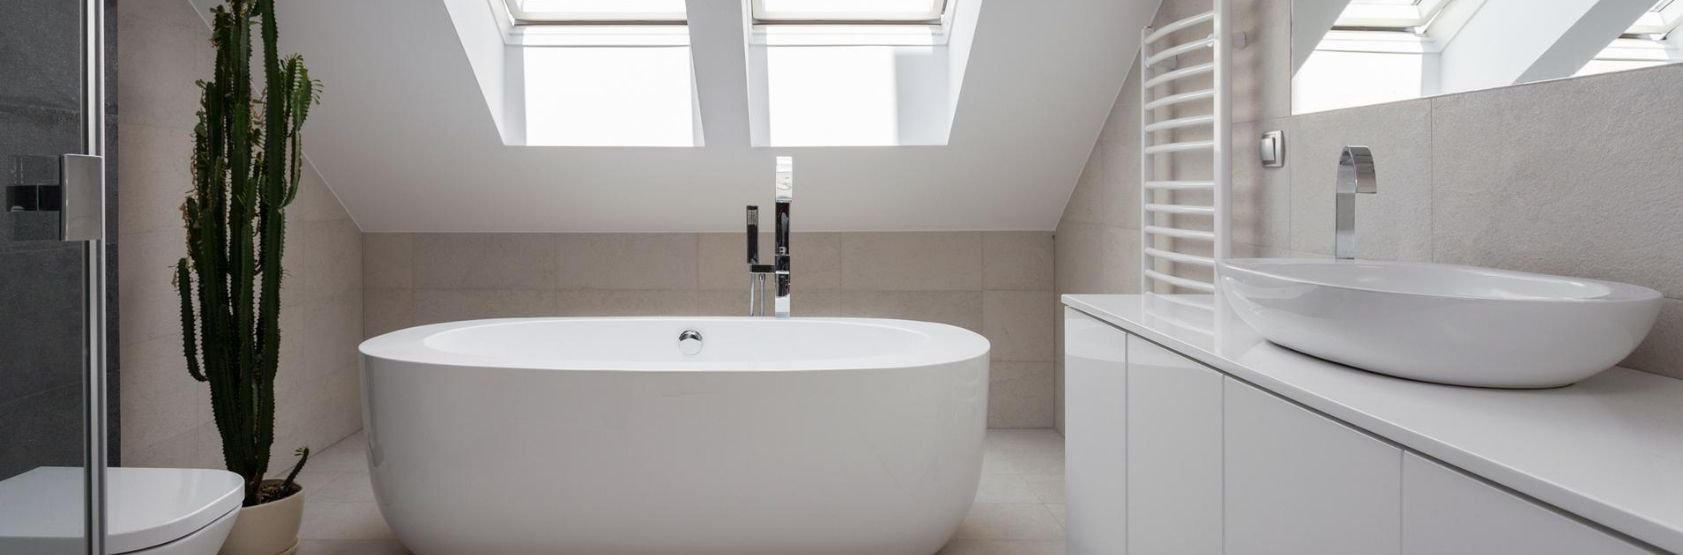 Bathroom-Fitting-Services-Dorset-Hampshire_9